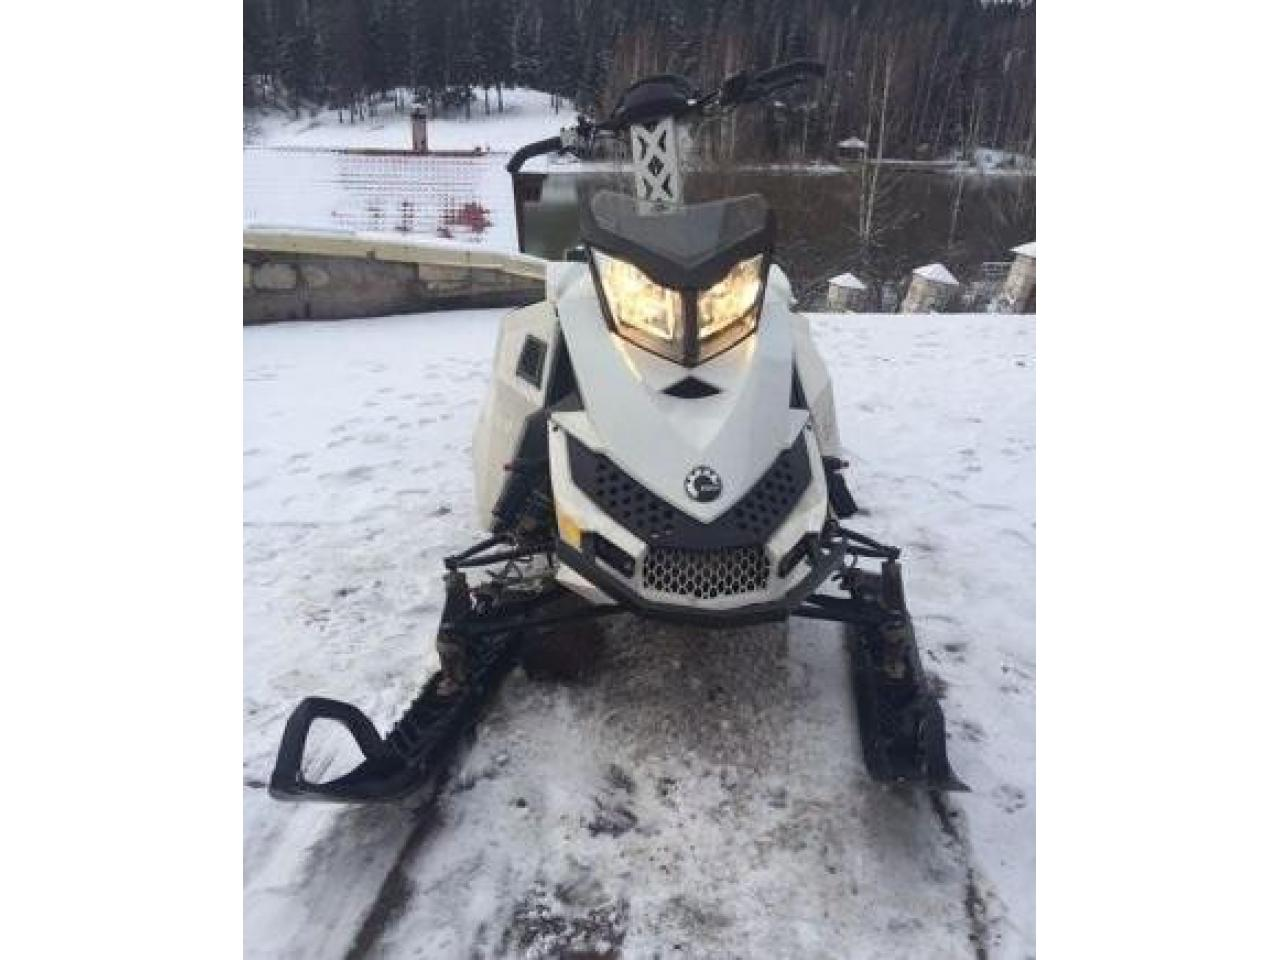 BRP Ski-doo Summit Freeride 800etec 154 - 1/4